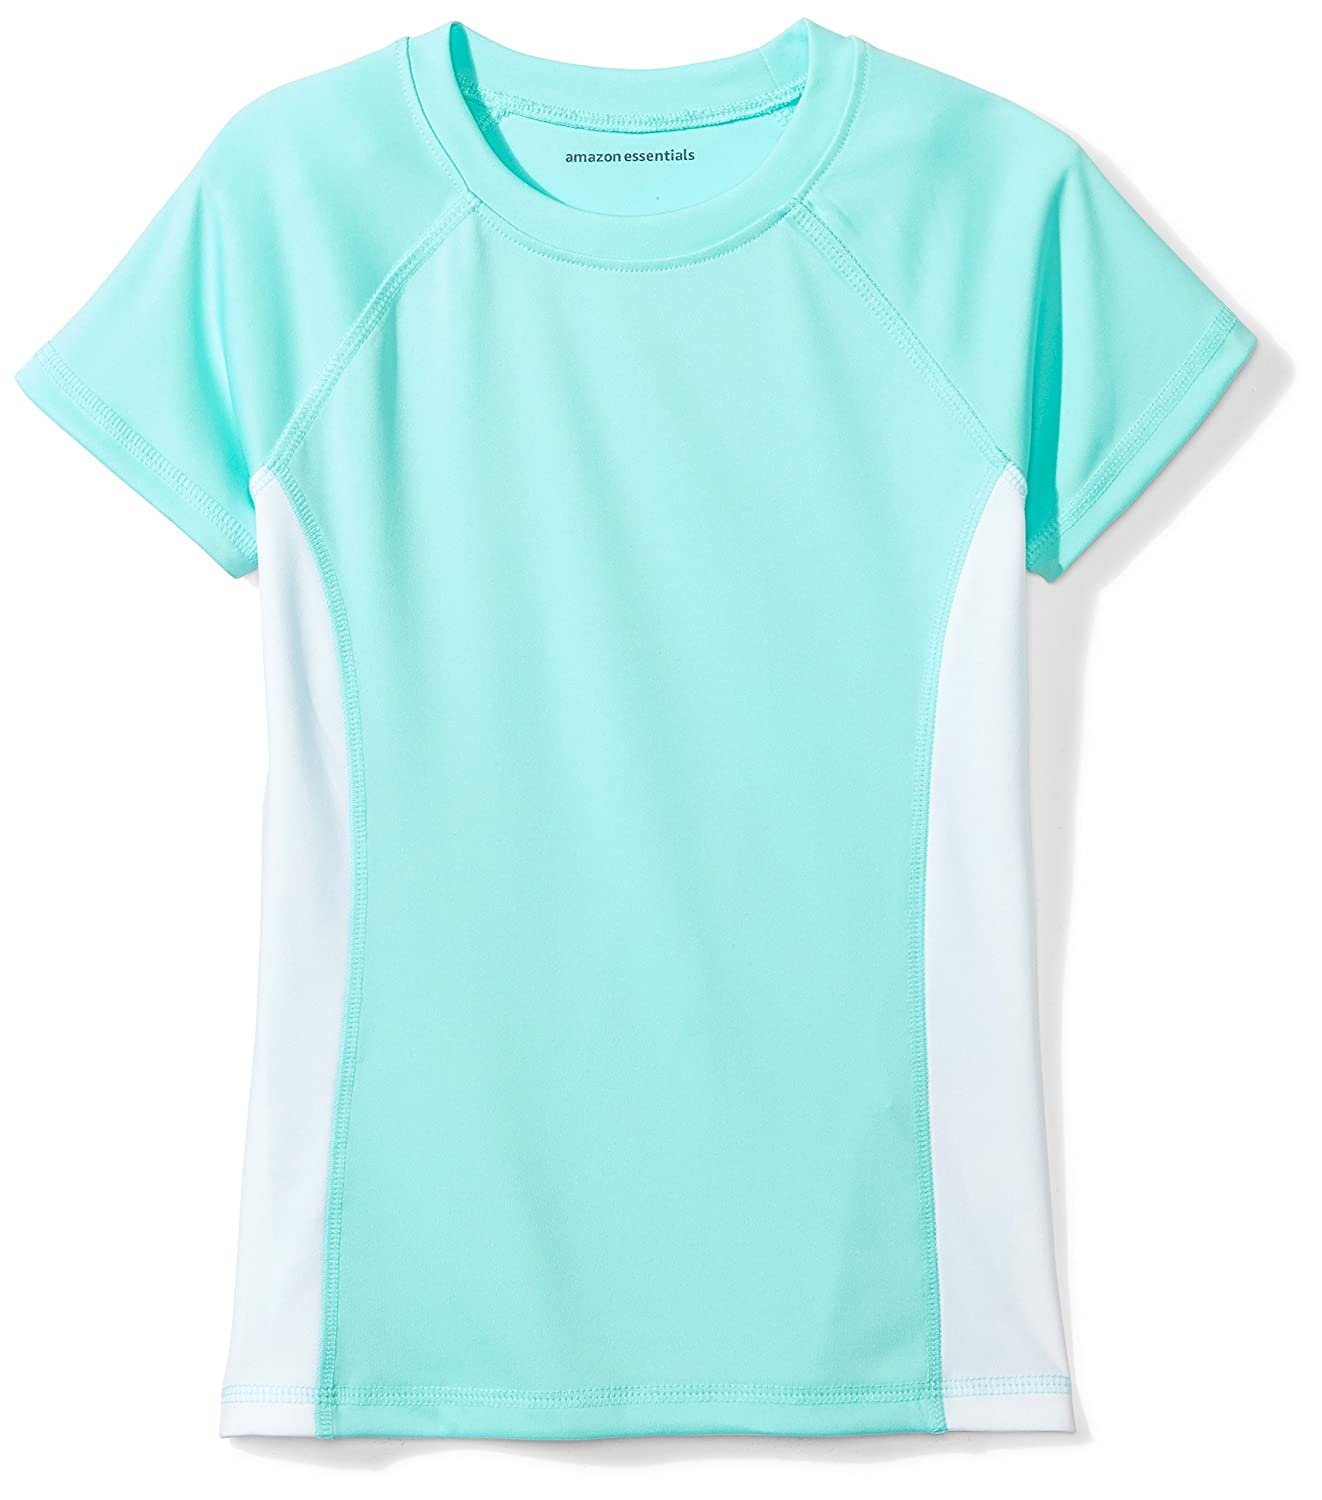 Amazon Essentials Girls Girls' Swim Tee GAE45076SP18